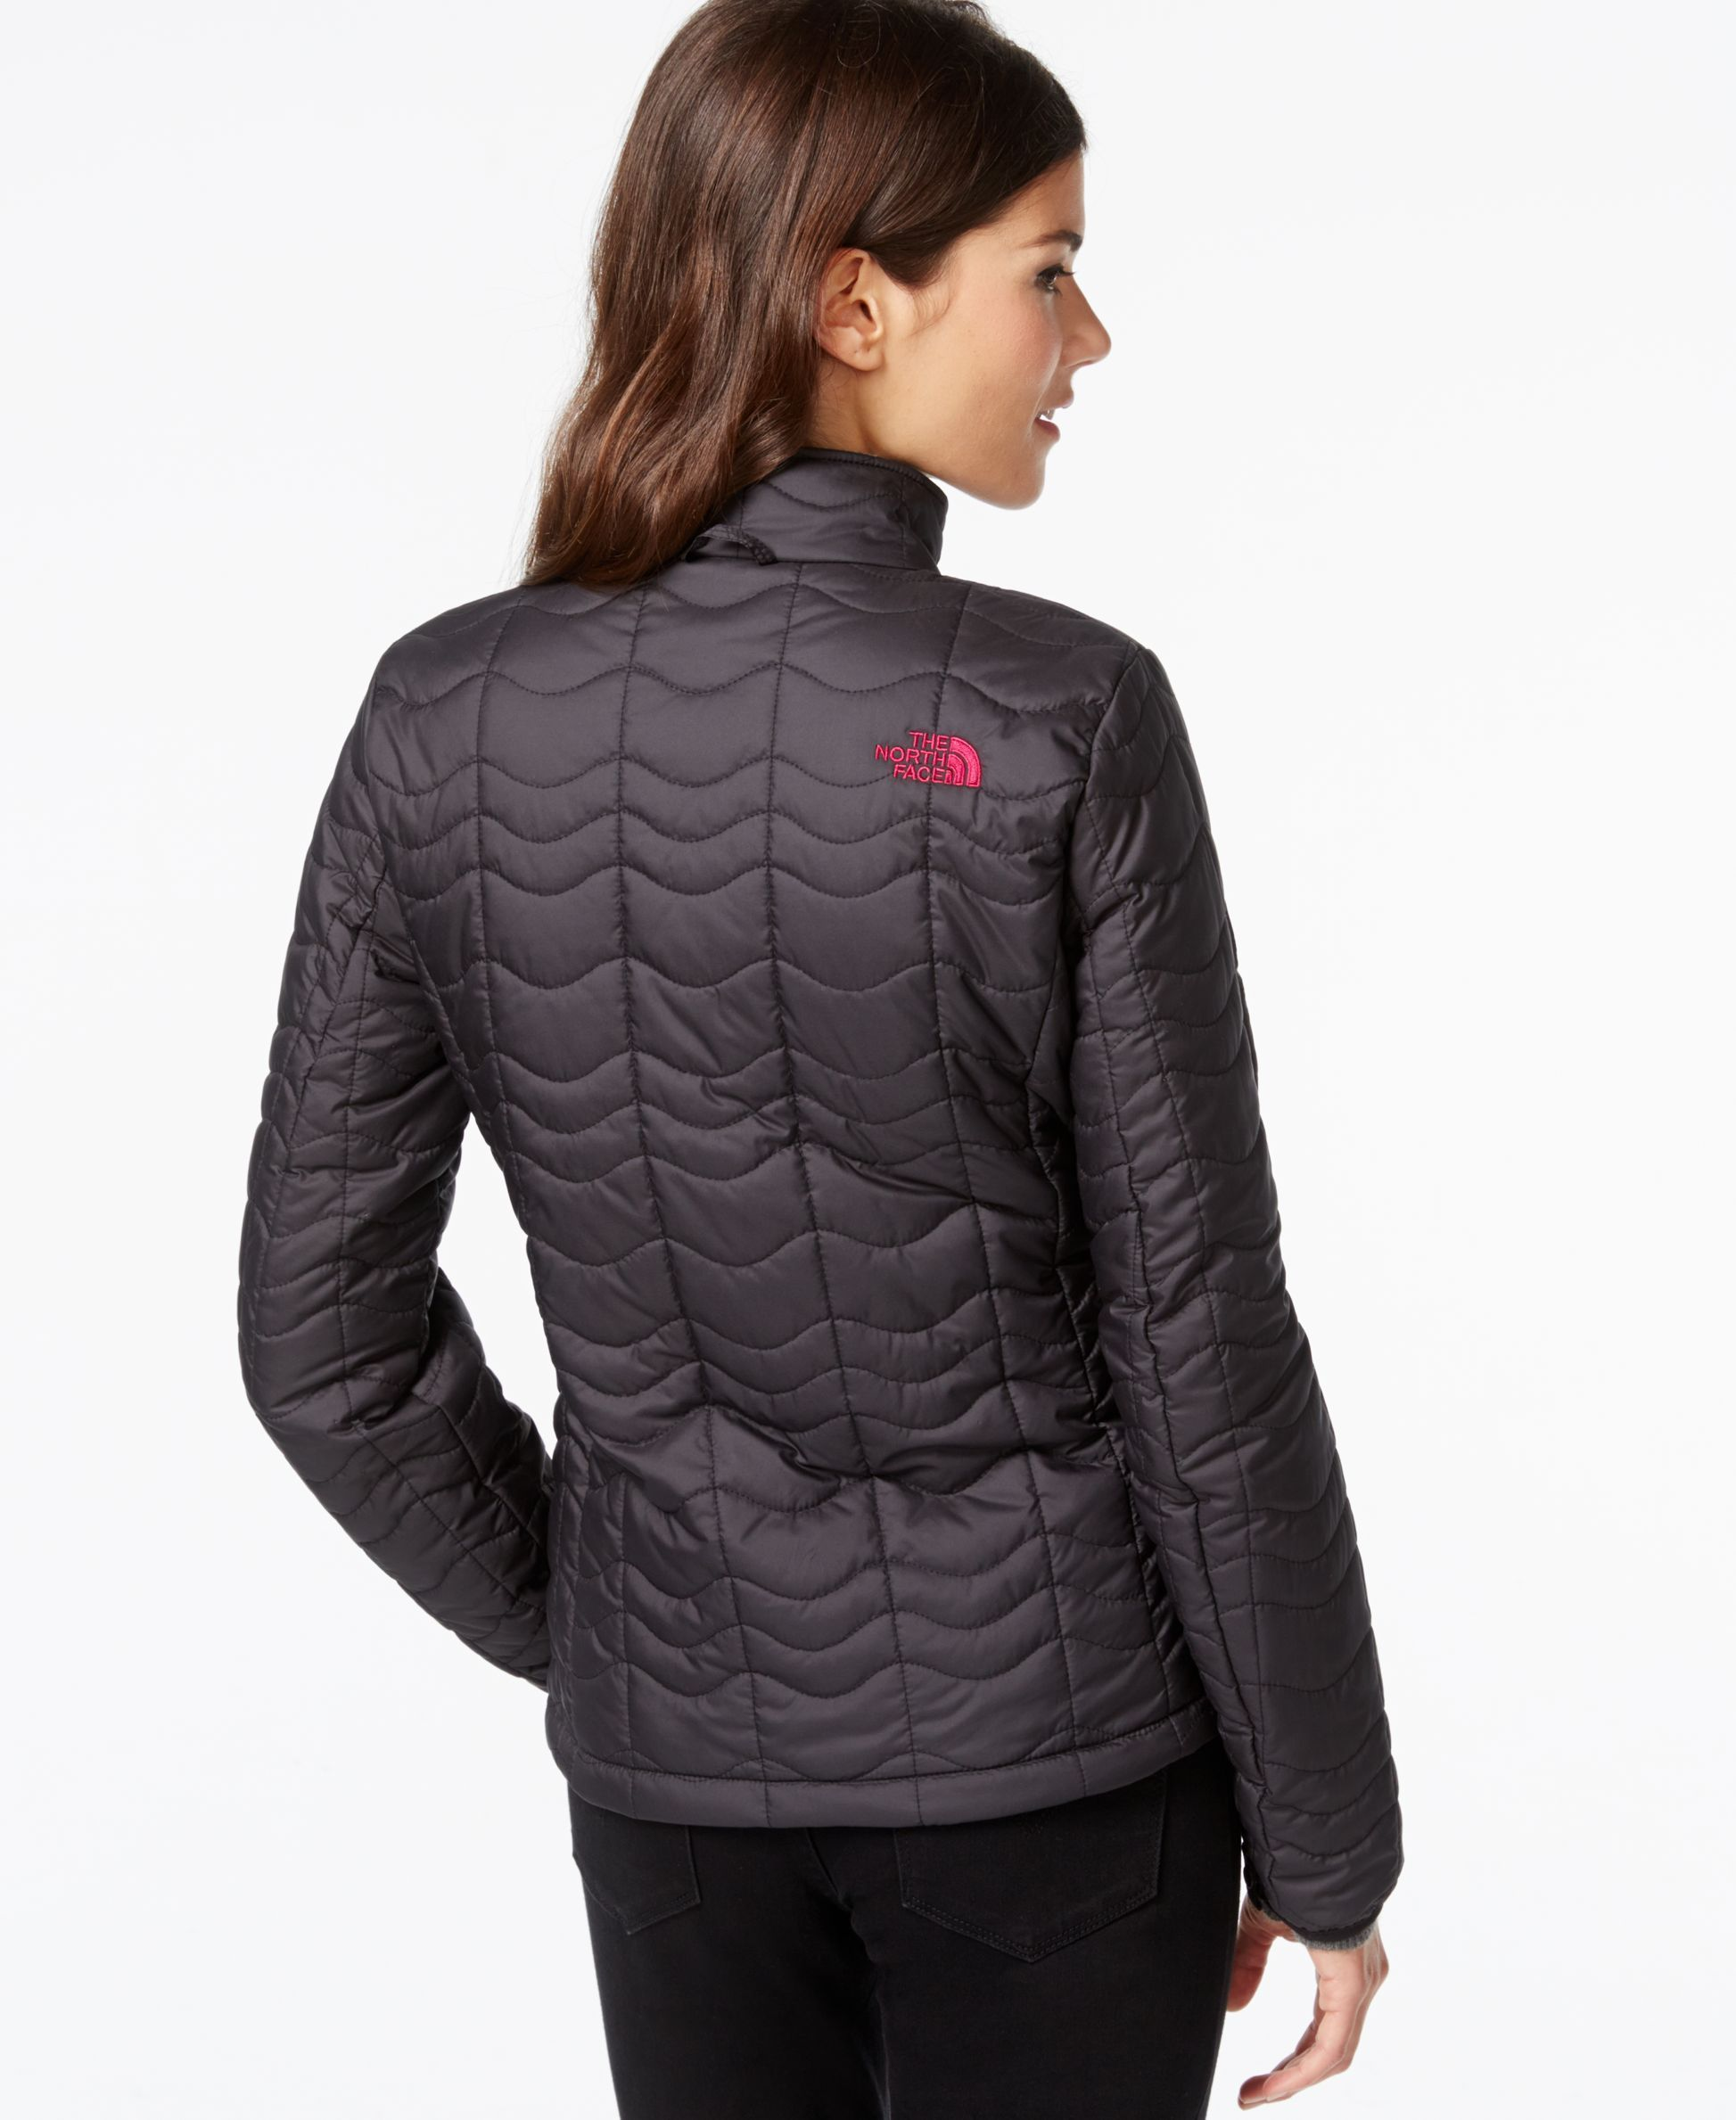 The North Face Insulated Bombay Jacket The North Face Women Macy S Blazer Jackets For Women North Face Women Jackets [ 2378 x 1947 Pixel ]